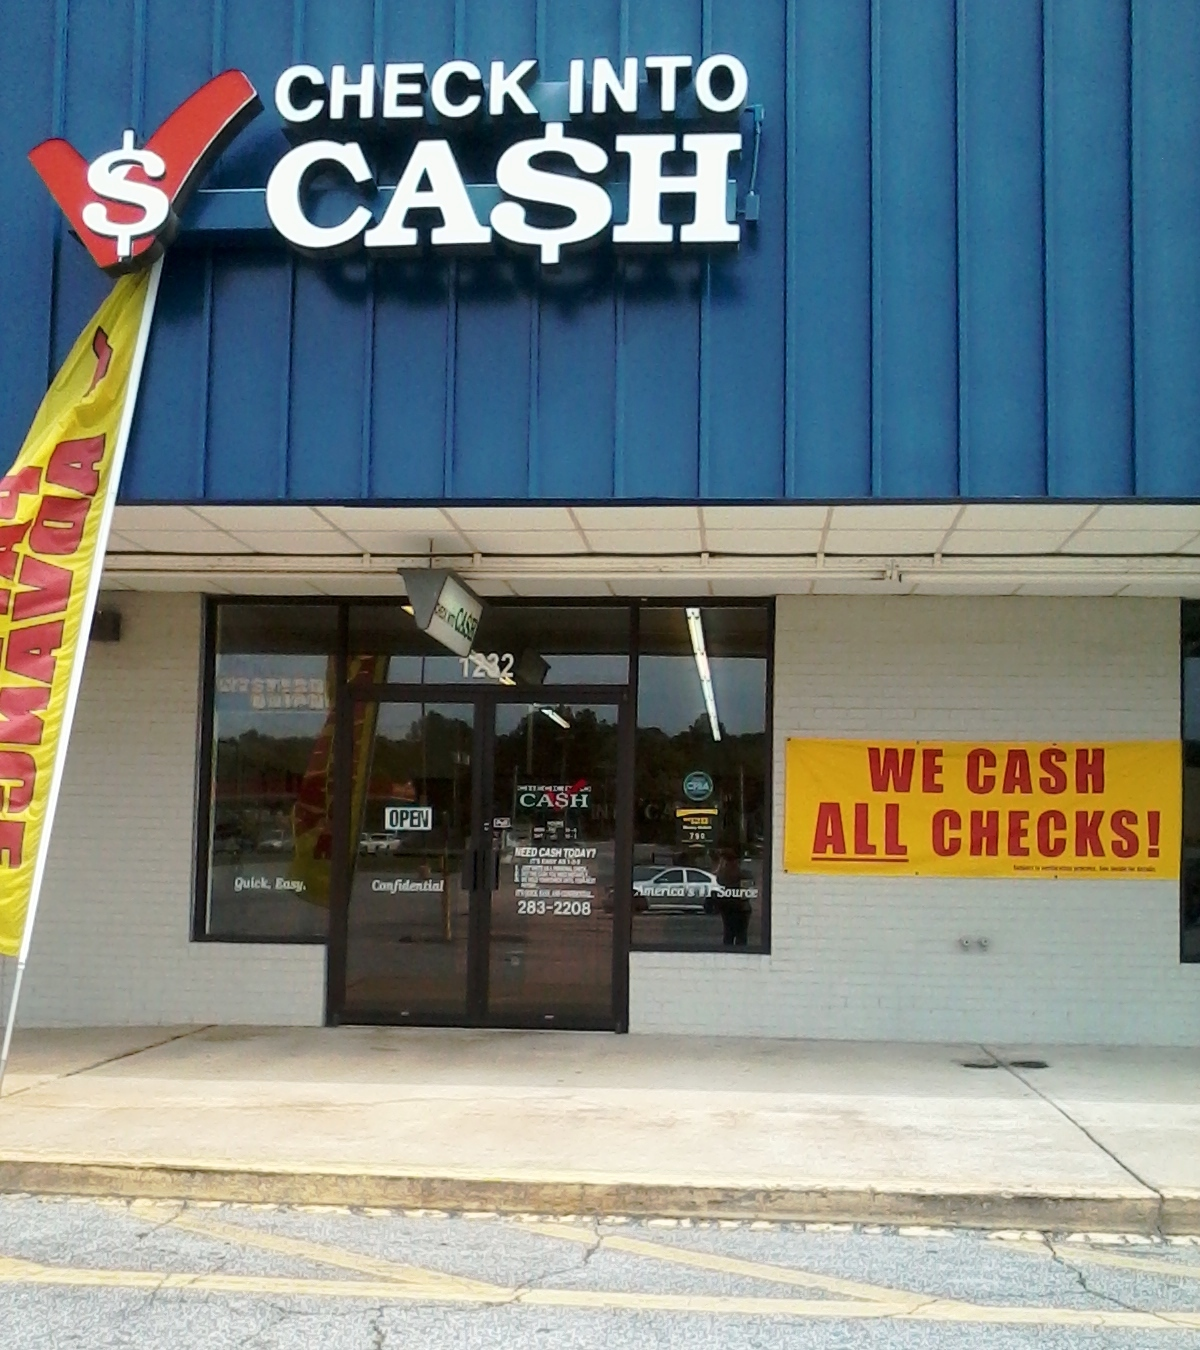 At Check Into Cash, we have made it easy and fast to get the cash you need, when you need it. Whether you are getting an online loan Opens in a new window or visiting one of hundreds of retail locations near you Opens in a new window, we offer a hassle free approach to borrowing.